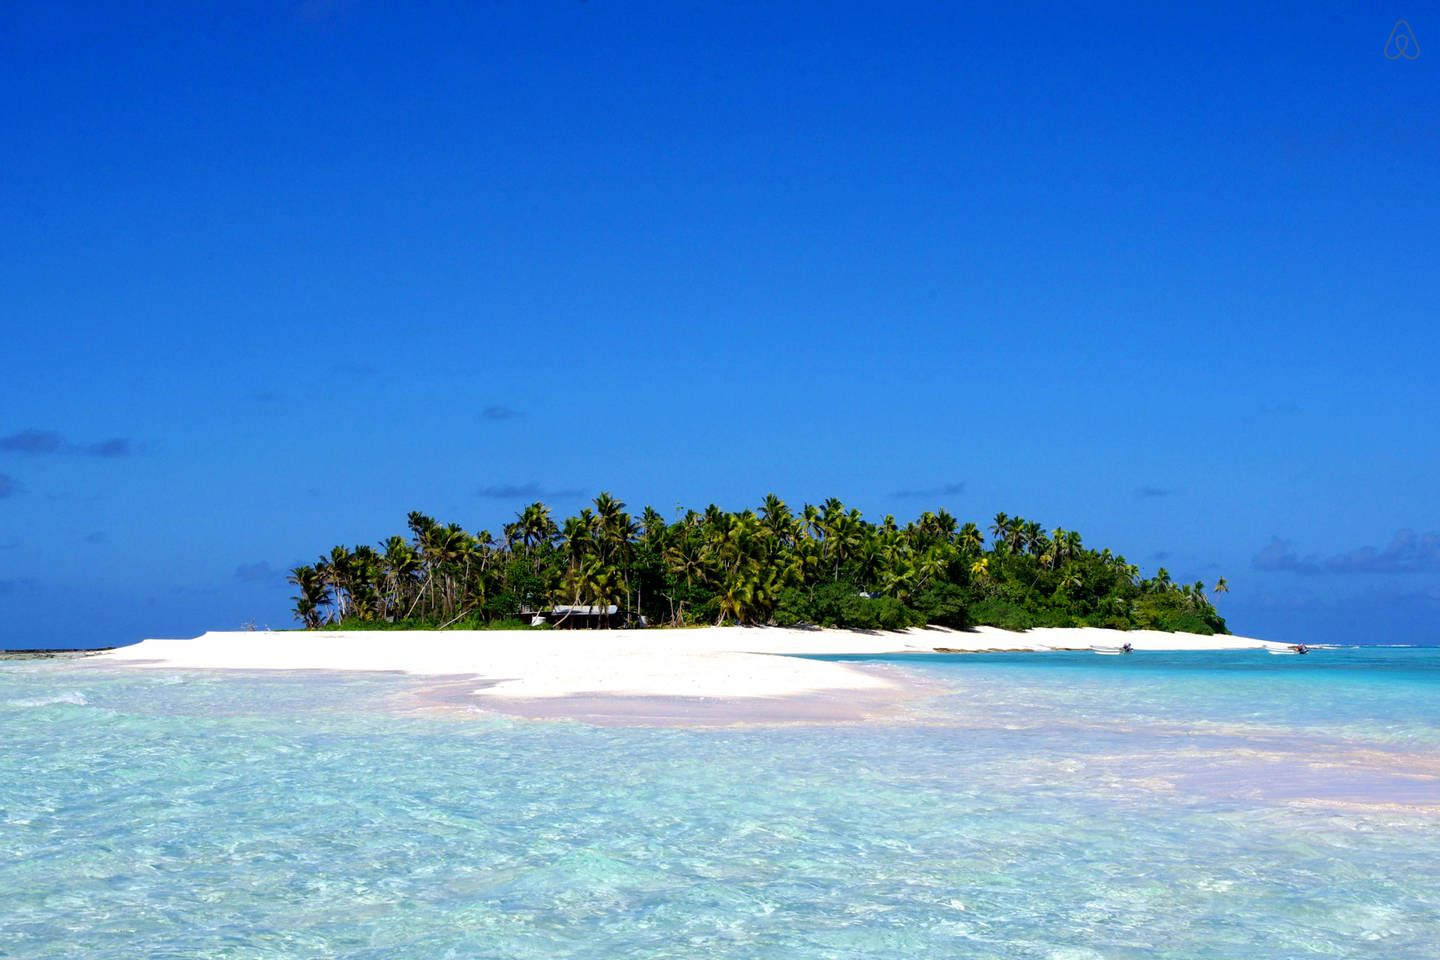 Looking For Tropical Paradise Alone On Your Own Fiji Island - 10 private islands you can own today